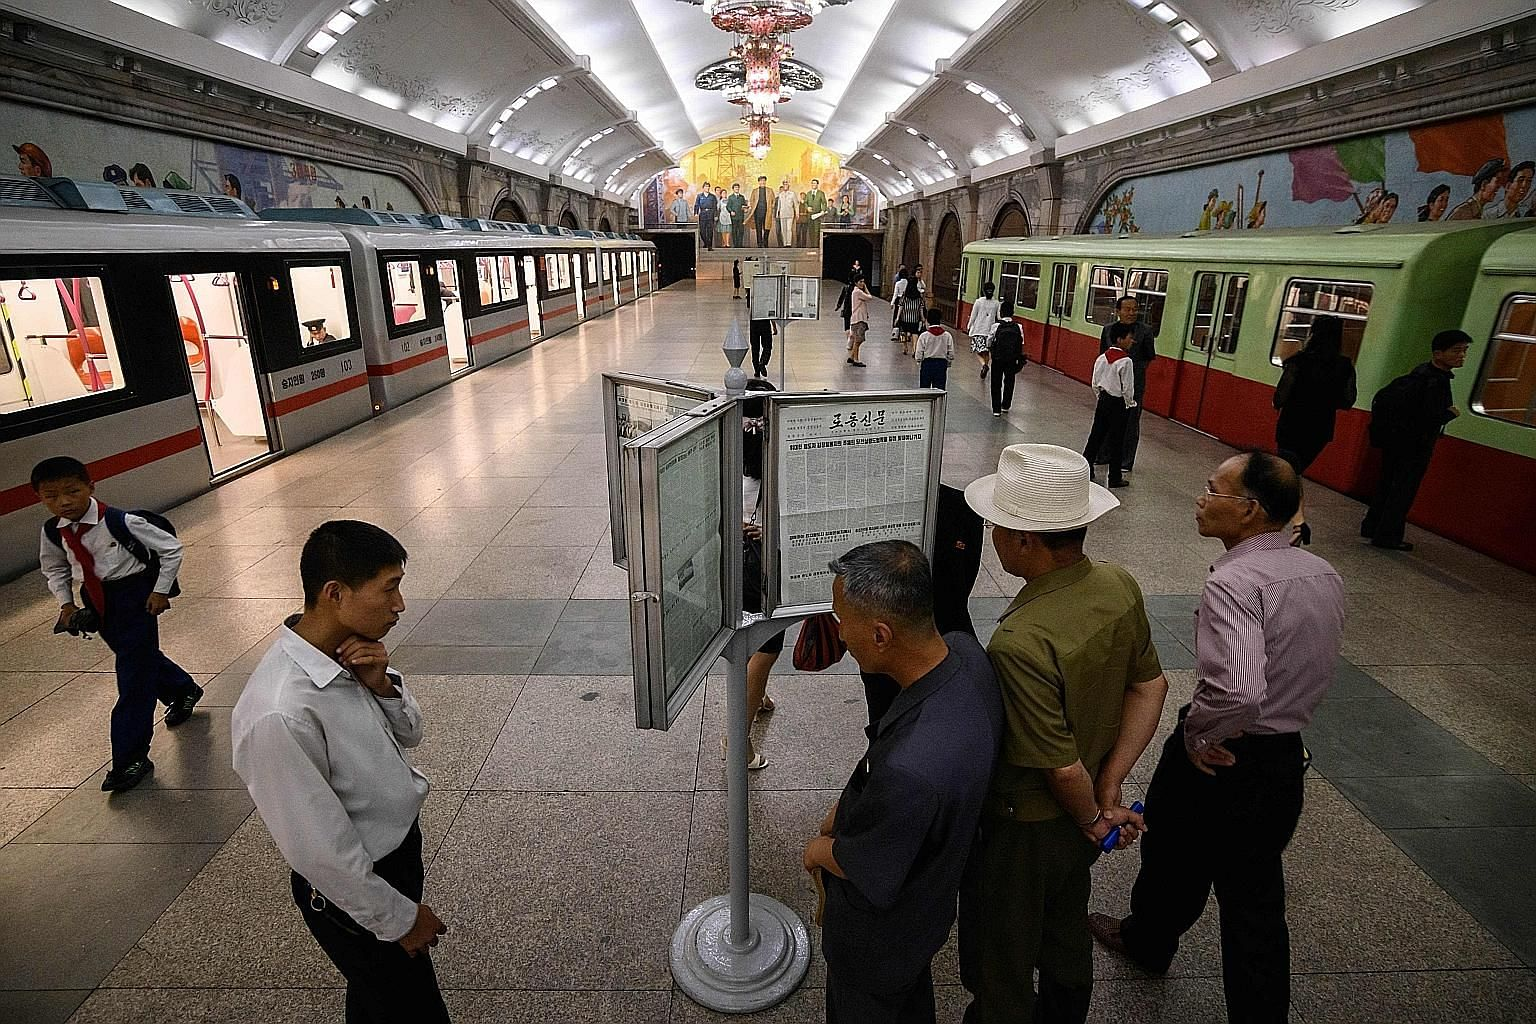 Commuters in a Pyongyang subway station, ahead of Chinese President Xi Jinping's state visit today to mark the 70th anniversary of diplomatic relations between China and North Korea. PHOTO: AGENCE FRANCE-PRESSE